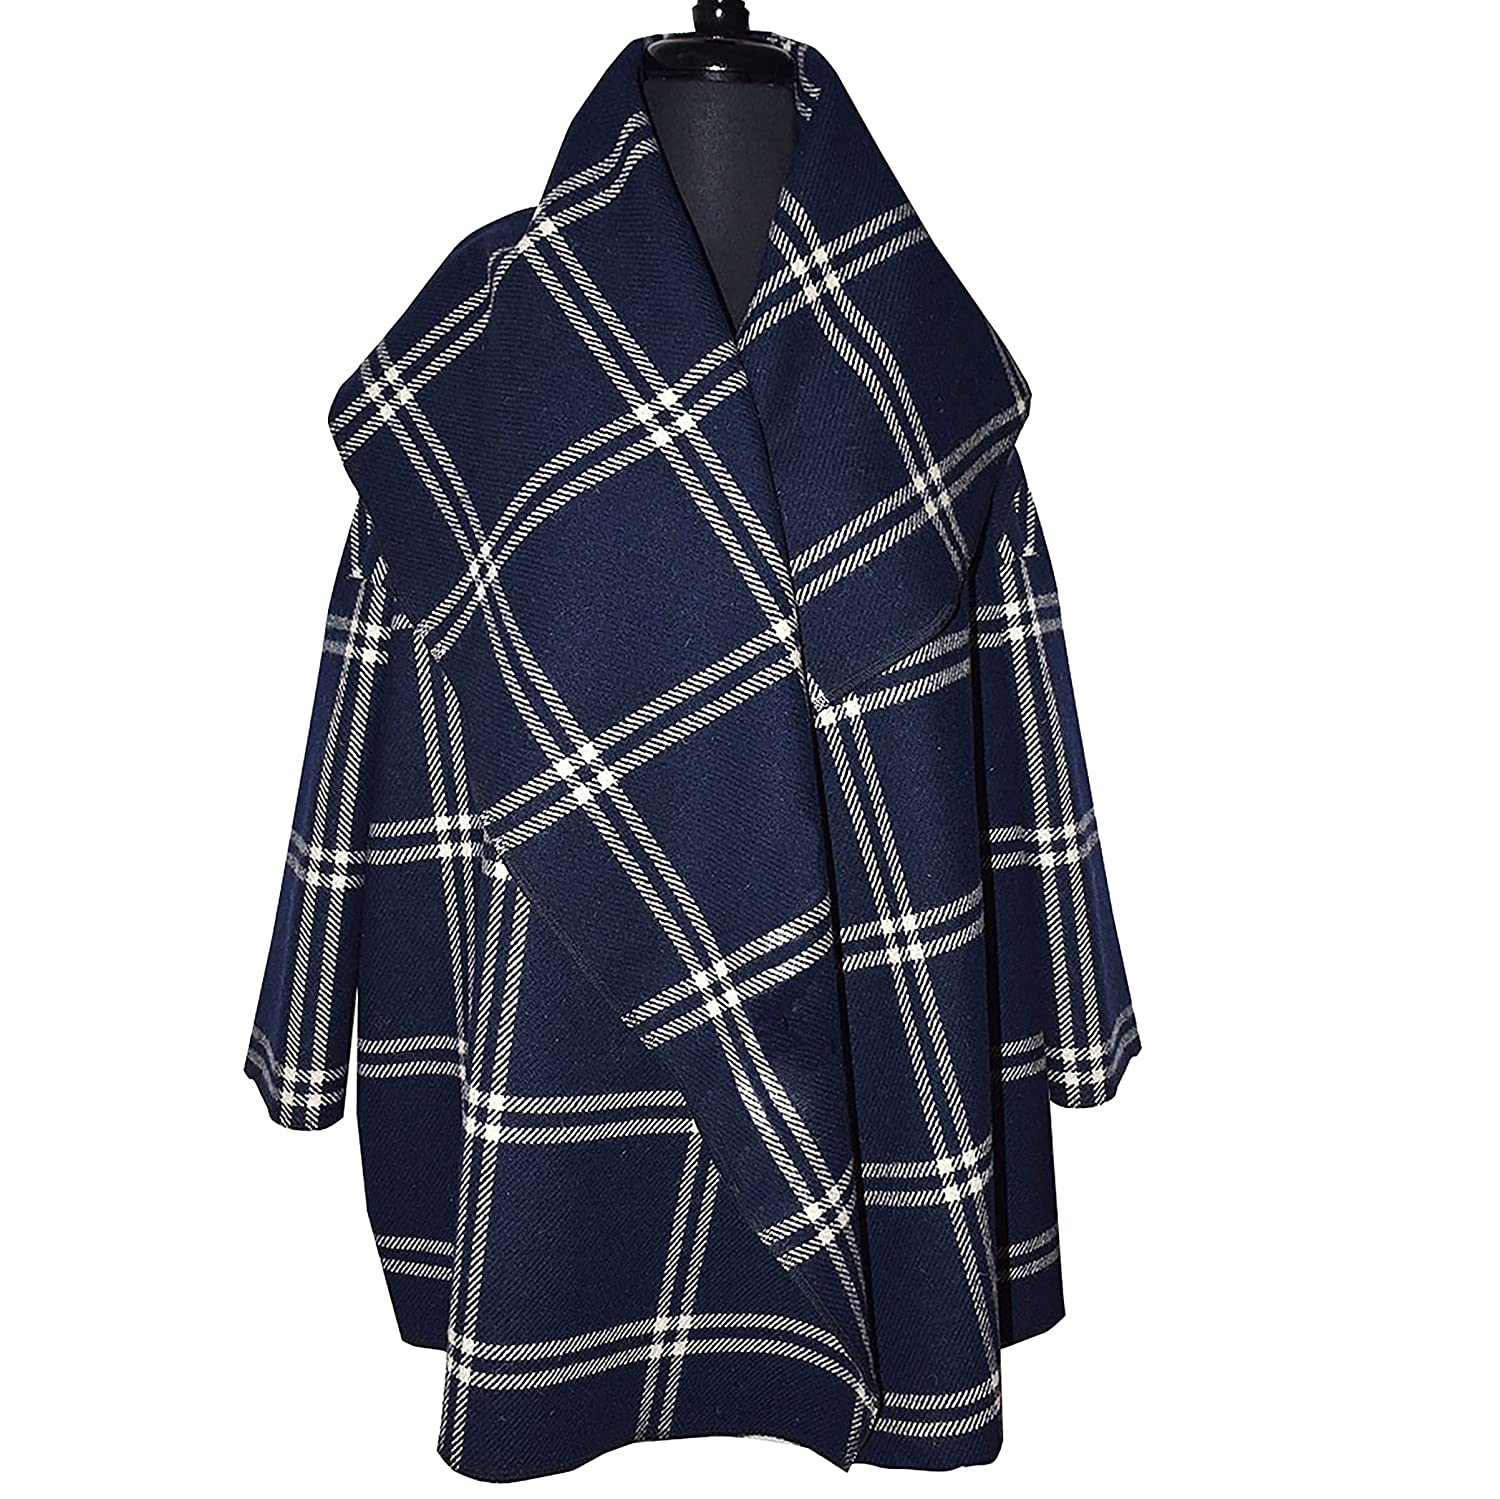 Gorgeous Navy Plaid Wool Spasm price Max 52% OFF Cape Tie with